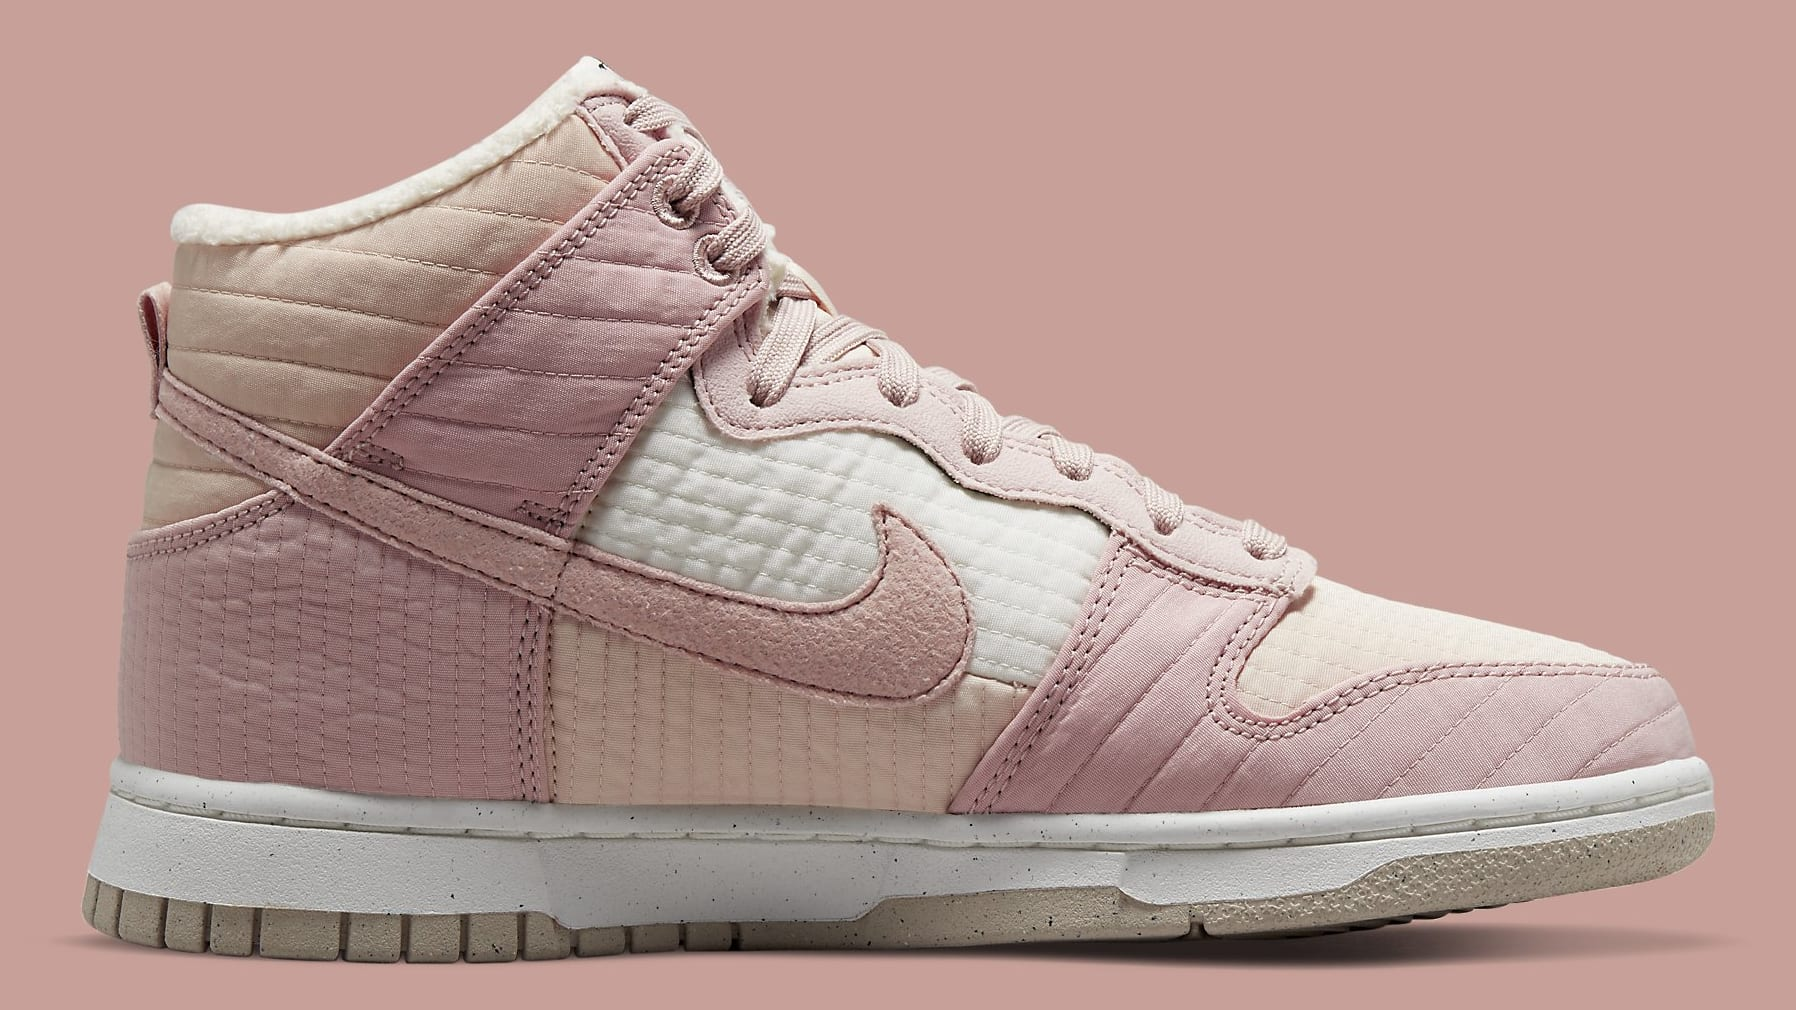 Nike Dunk High Toasty Pink DN9909-200 Release Date Medial